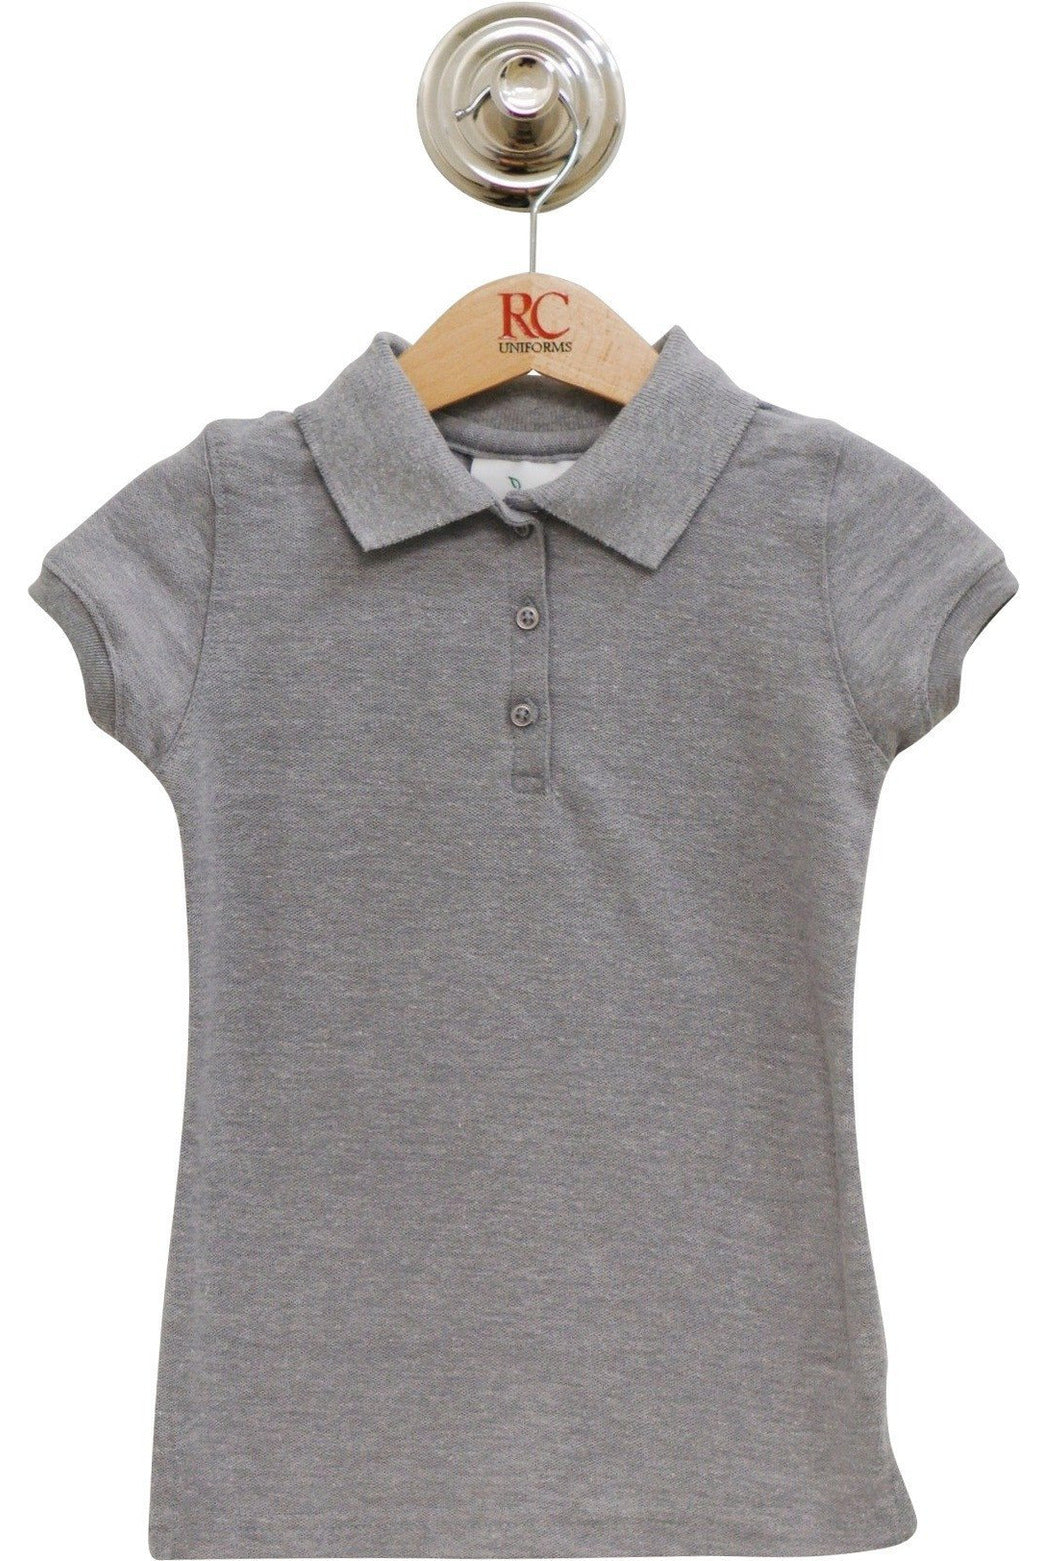 Girls Cap Sleeve Polo Shirt - RC Uniforms